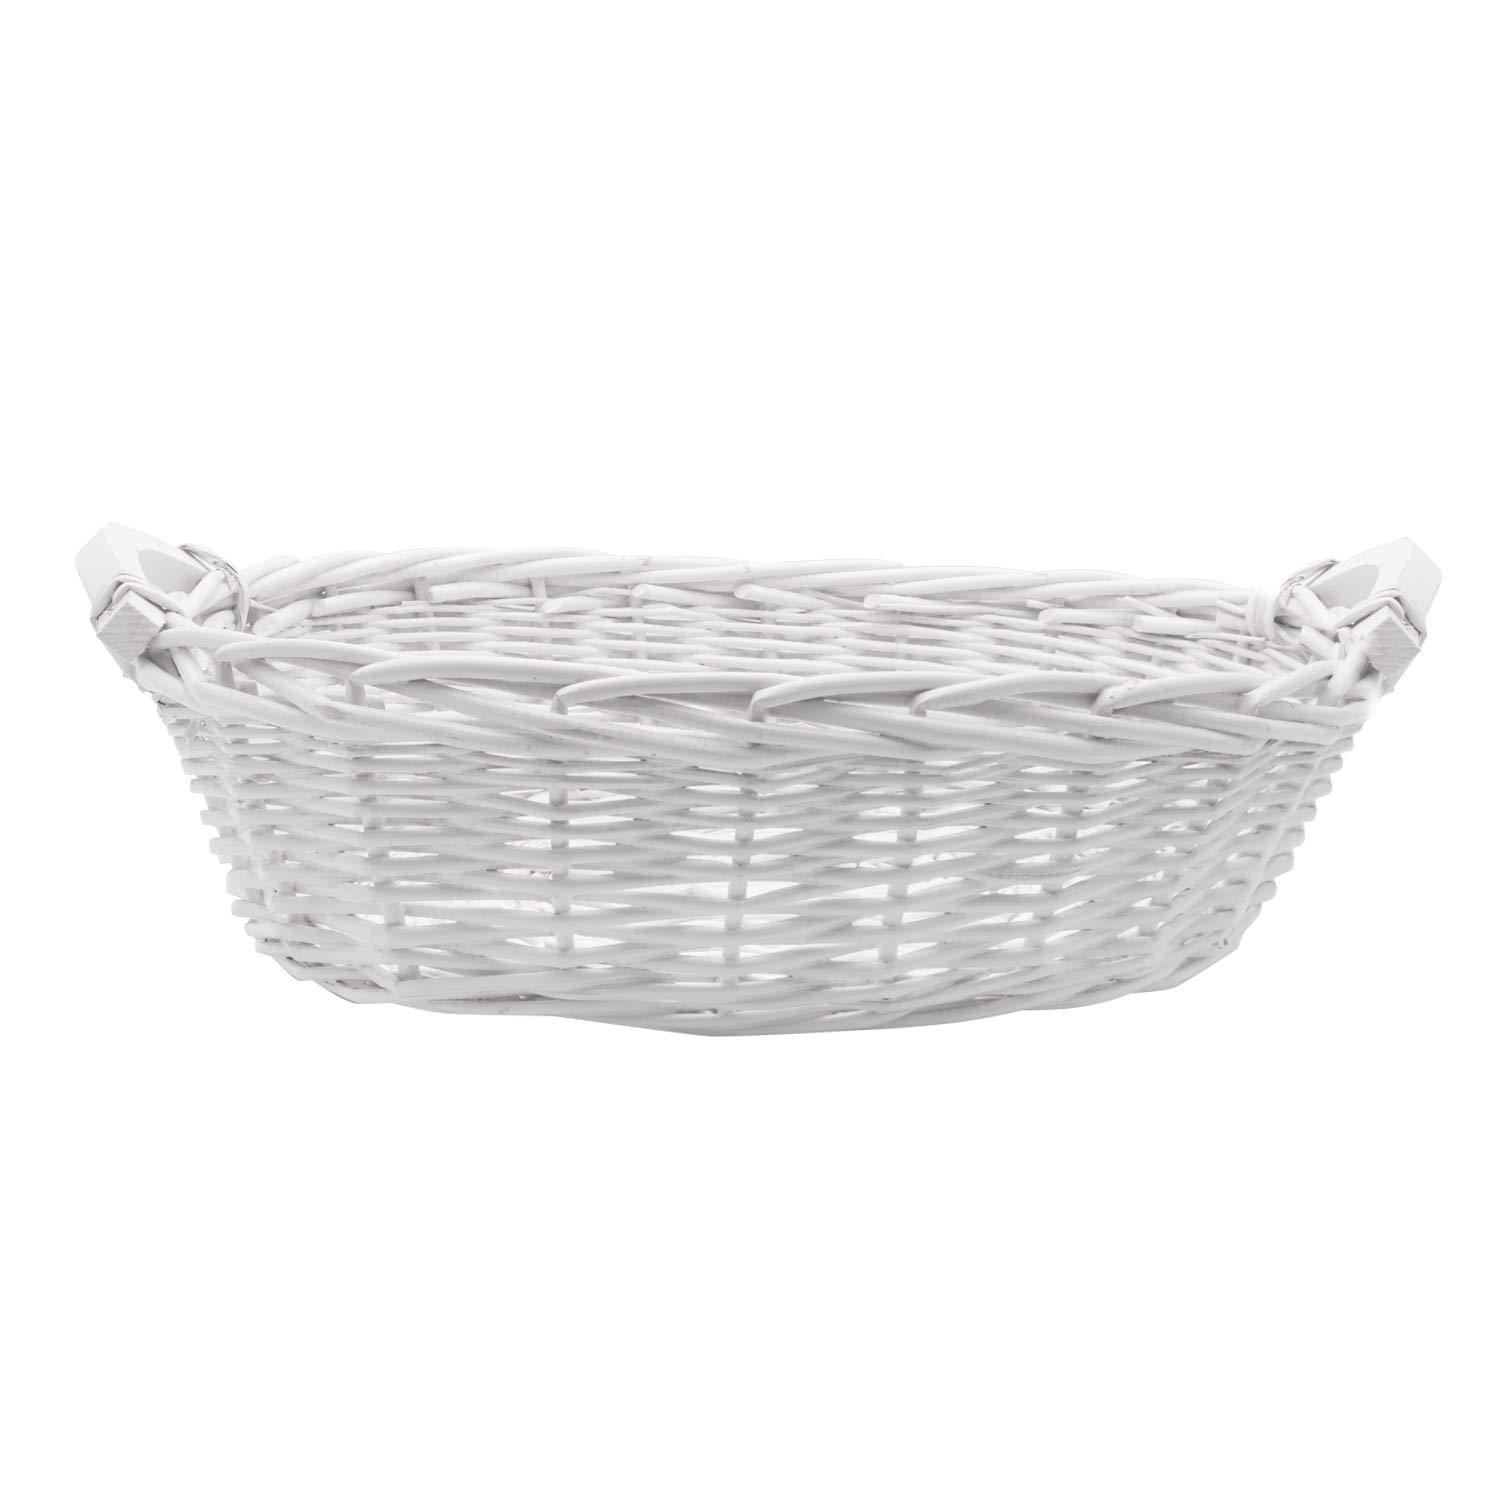 Royal Imports Picnic Gift Basket Braided Willow Handwoven for Fruits, Flowers, Storage or Bread, Oval with Short Handles, 15'', White by Royal Imports